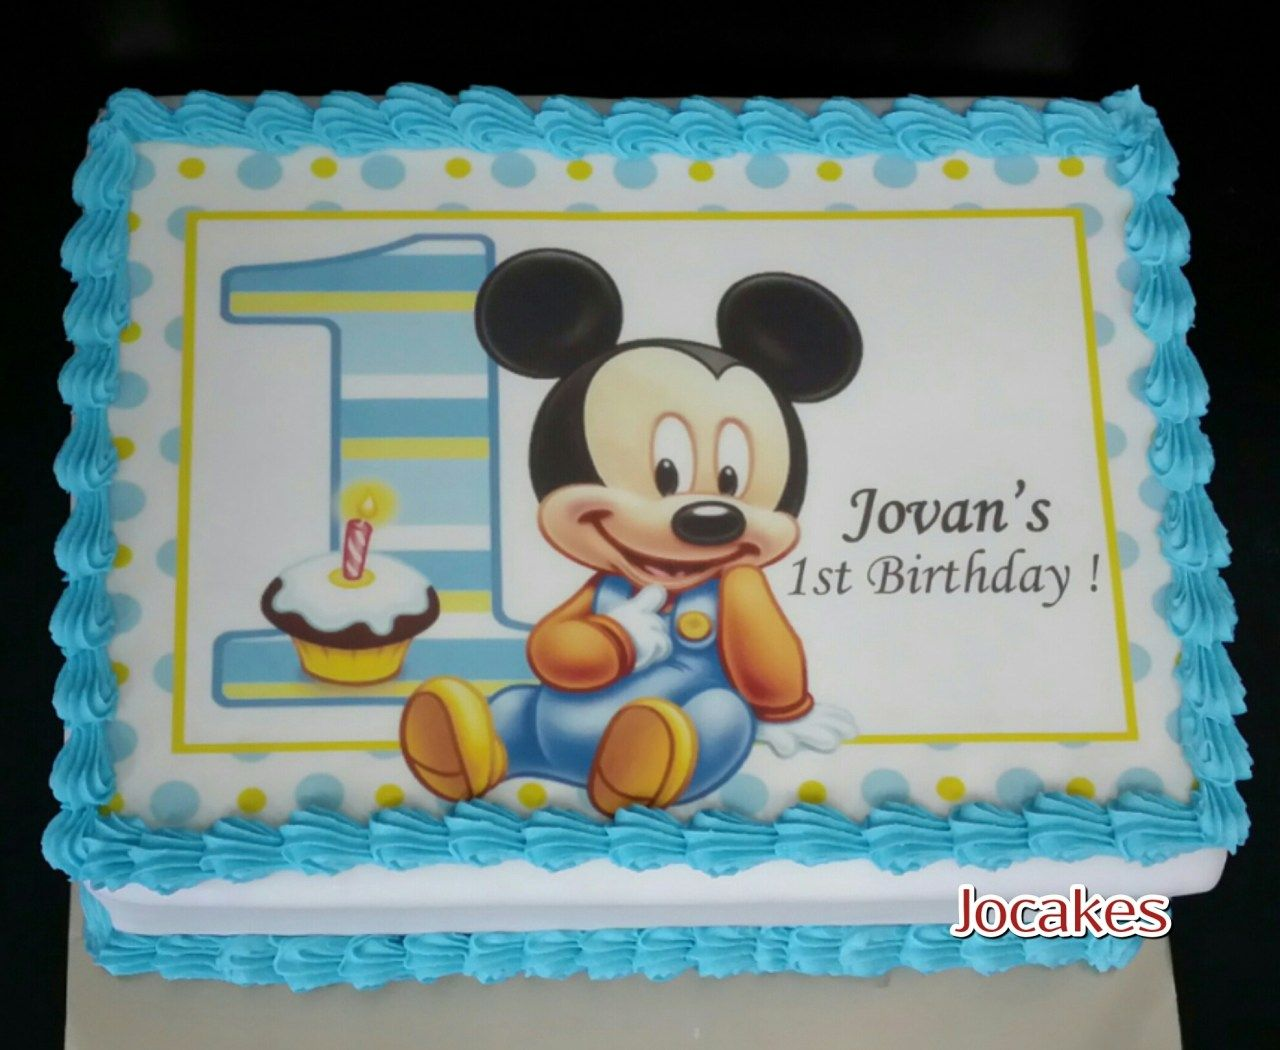 One Year Birthday Cake Pictures 1 Year Old Birthday Cake Jocakes In 2020 One Year Birthday Cake Mickey Mouse Birthday Cake Mickey Mouse 1st Birthday